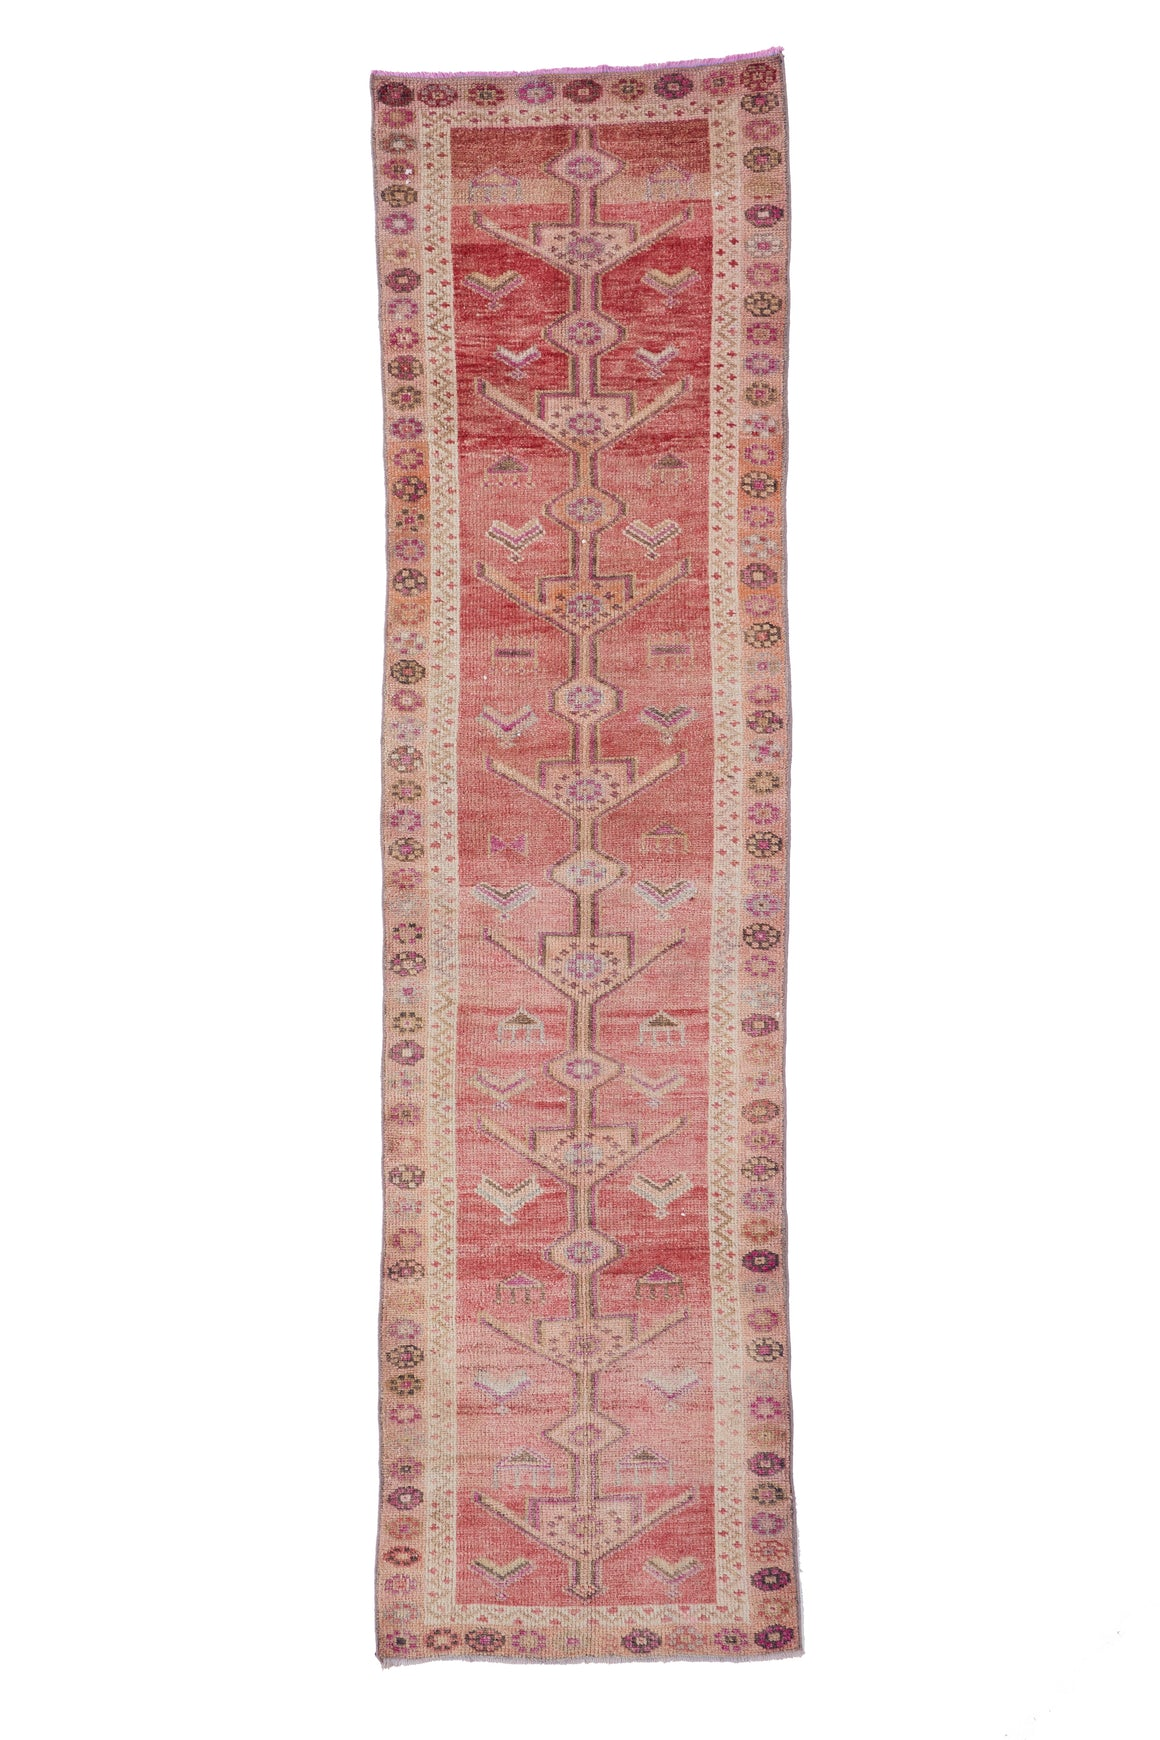 "'Flower' Vintage Turkish Runner - 3' x 11'5"" - Canary Lane - Curated Textiles"